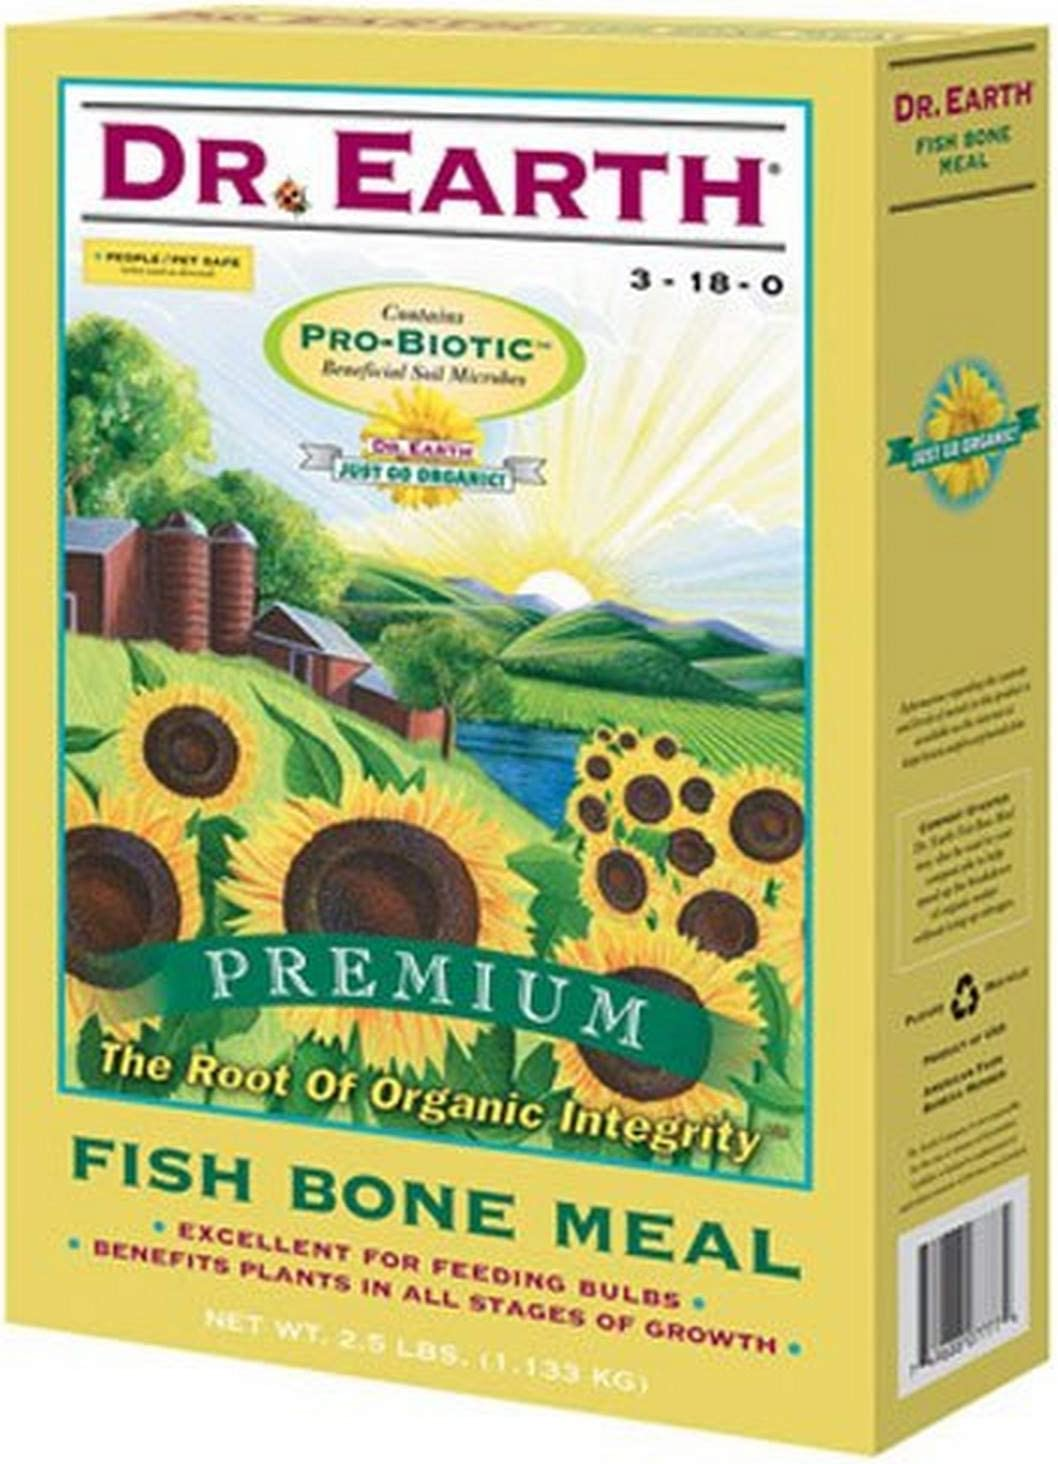 Dr. Earth 722 Fish Bone Meal 3-18-0 Boxed, 2-1/2-Pound,Multi